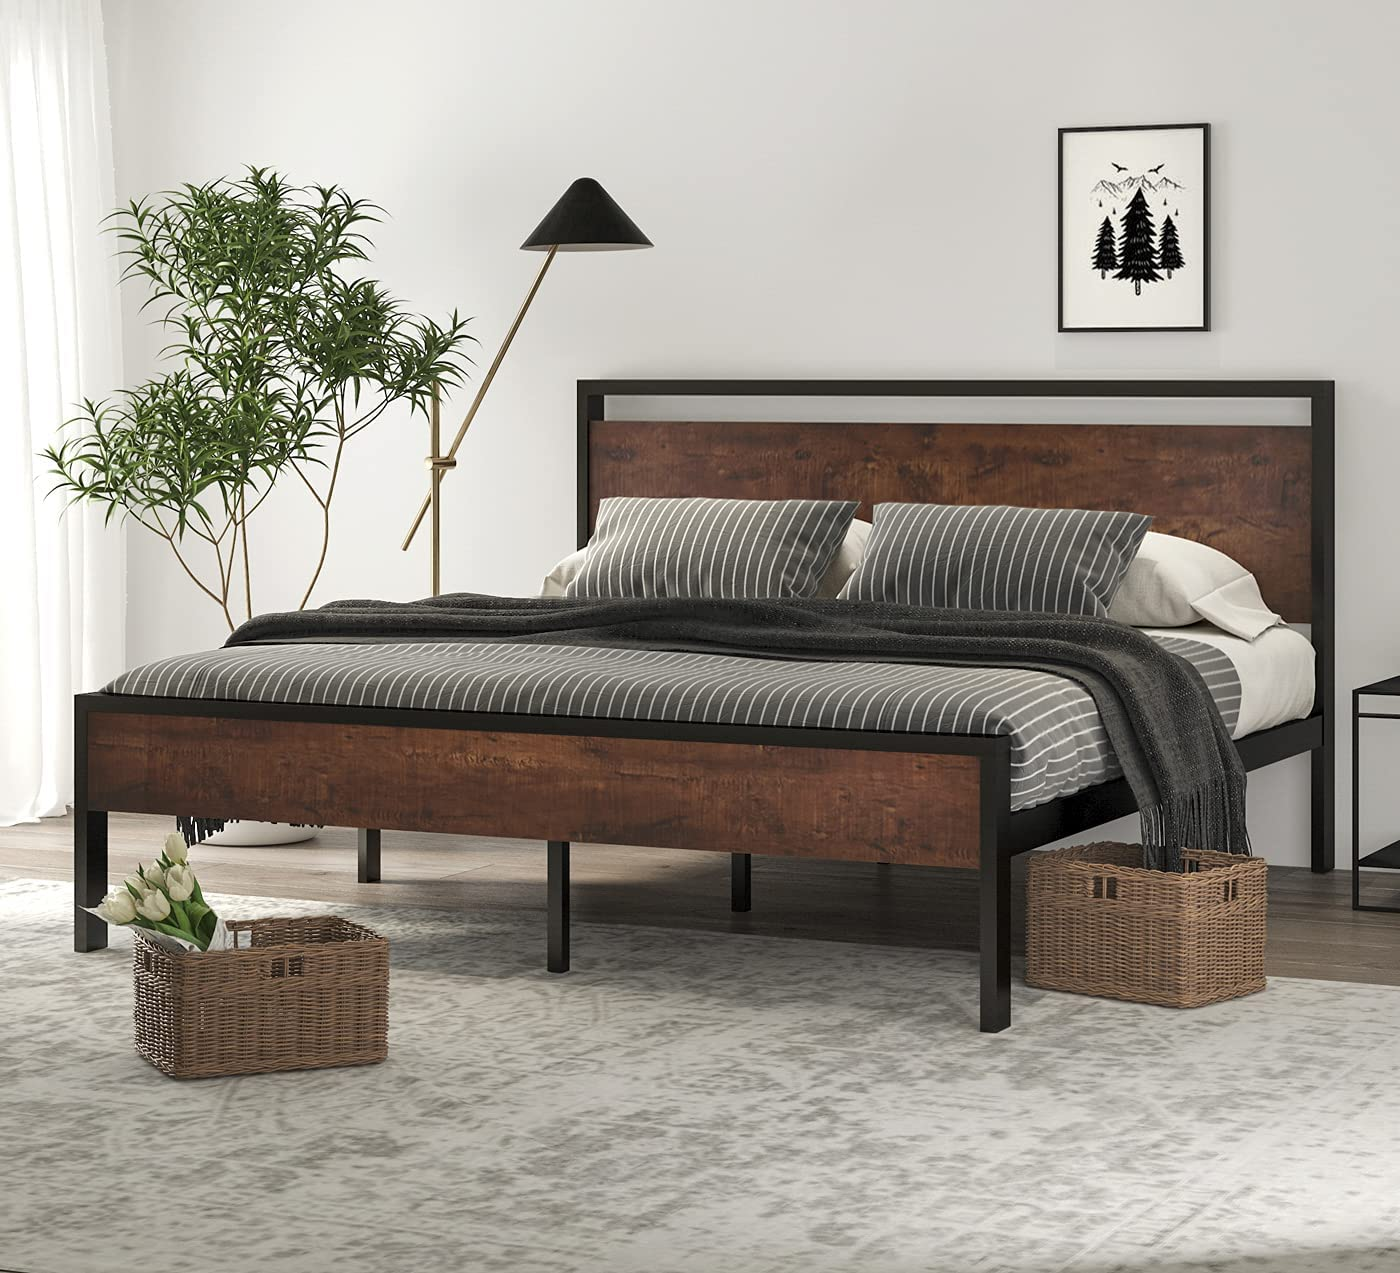 SHA CERLIN 14 Inch King Size Frame with Platform 100% quality warranty Bed Metal Woode All stores are sold